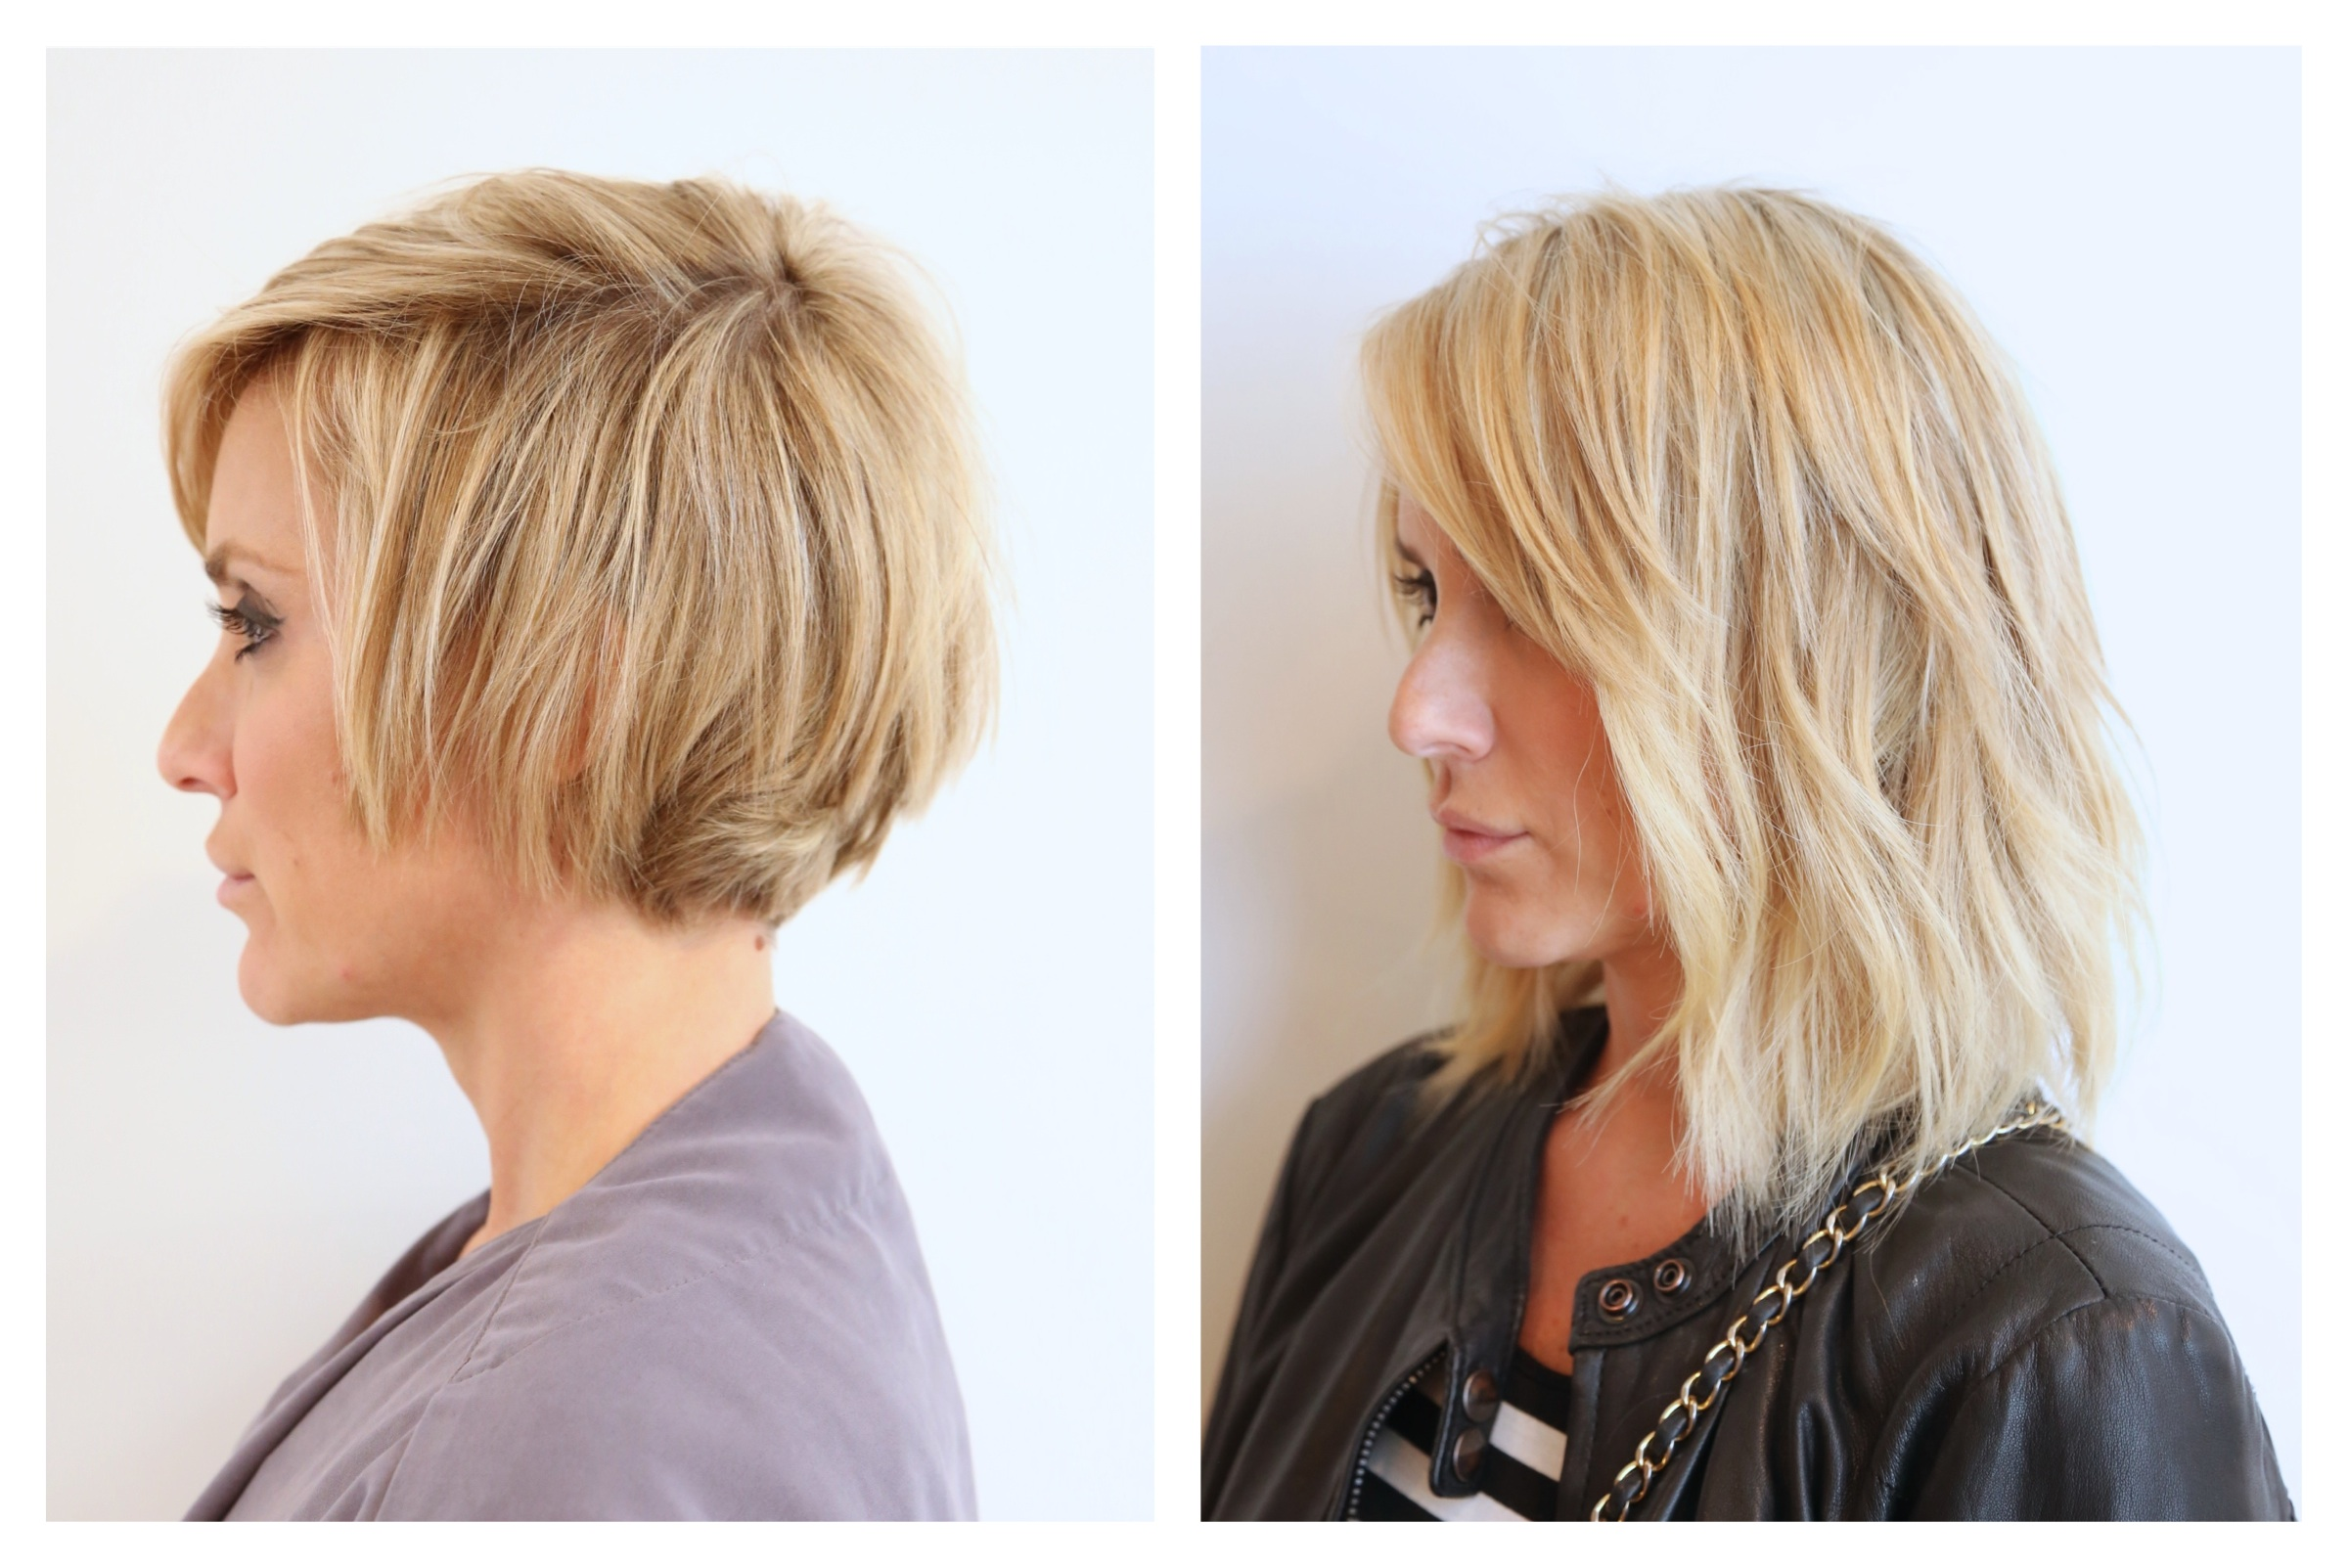 Tape In Hair Extensions For Pixie Cut 65